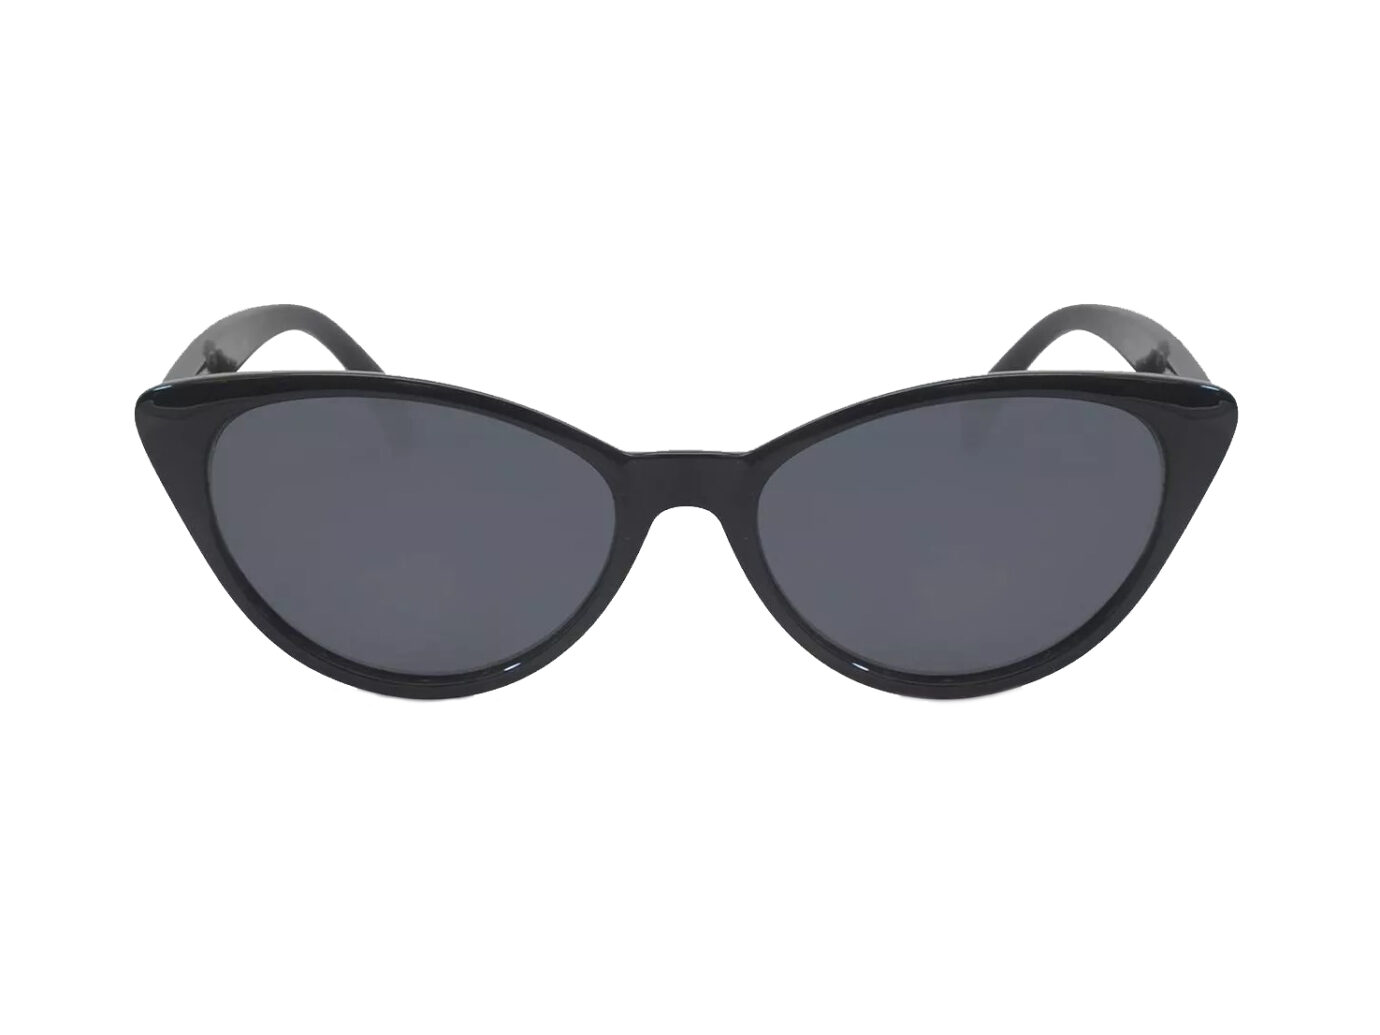 Women's Plastic Cateye Sunglasses